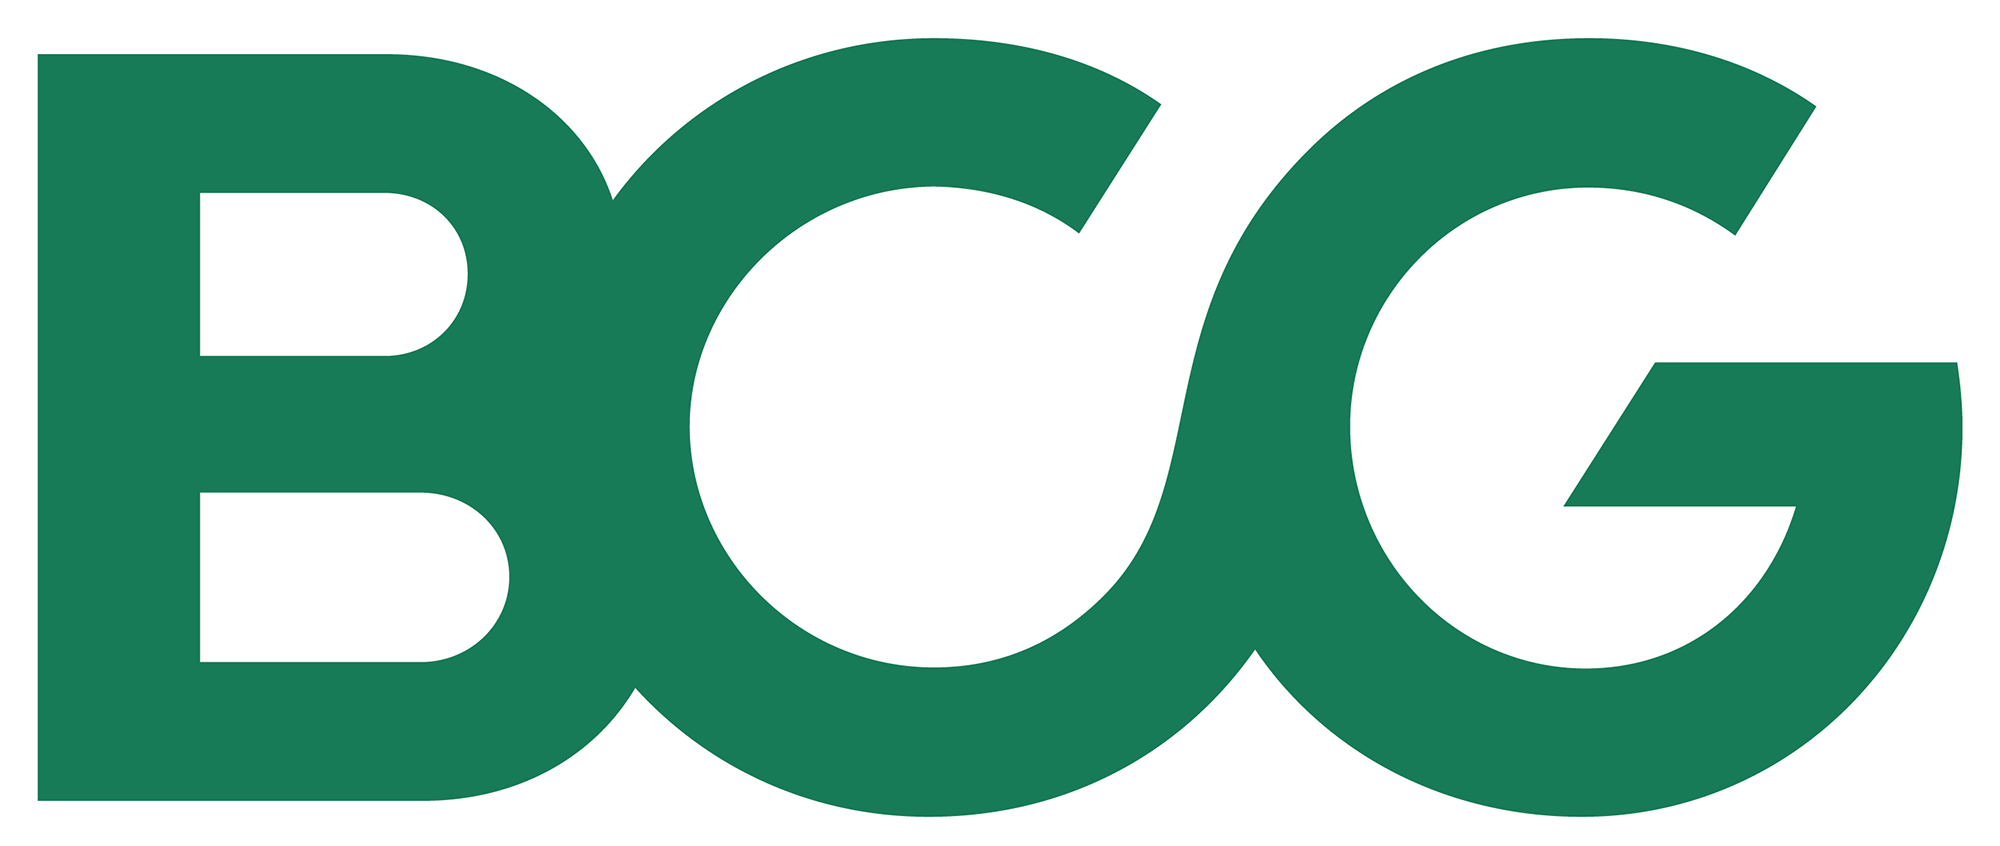 BCG Competitors, Revenue and Employees - Owler Company Profile